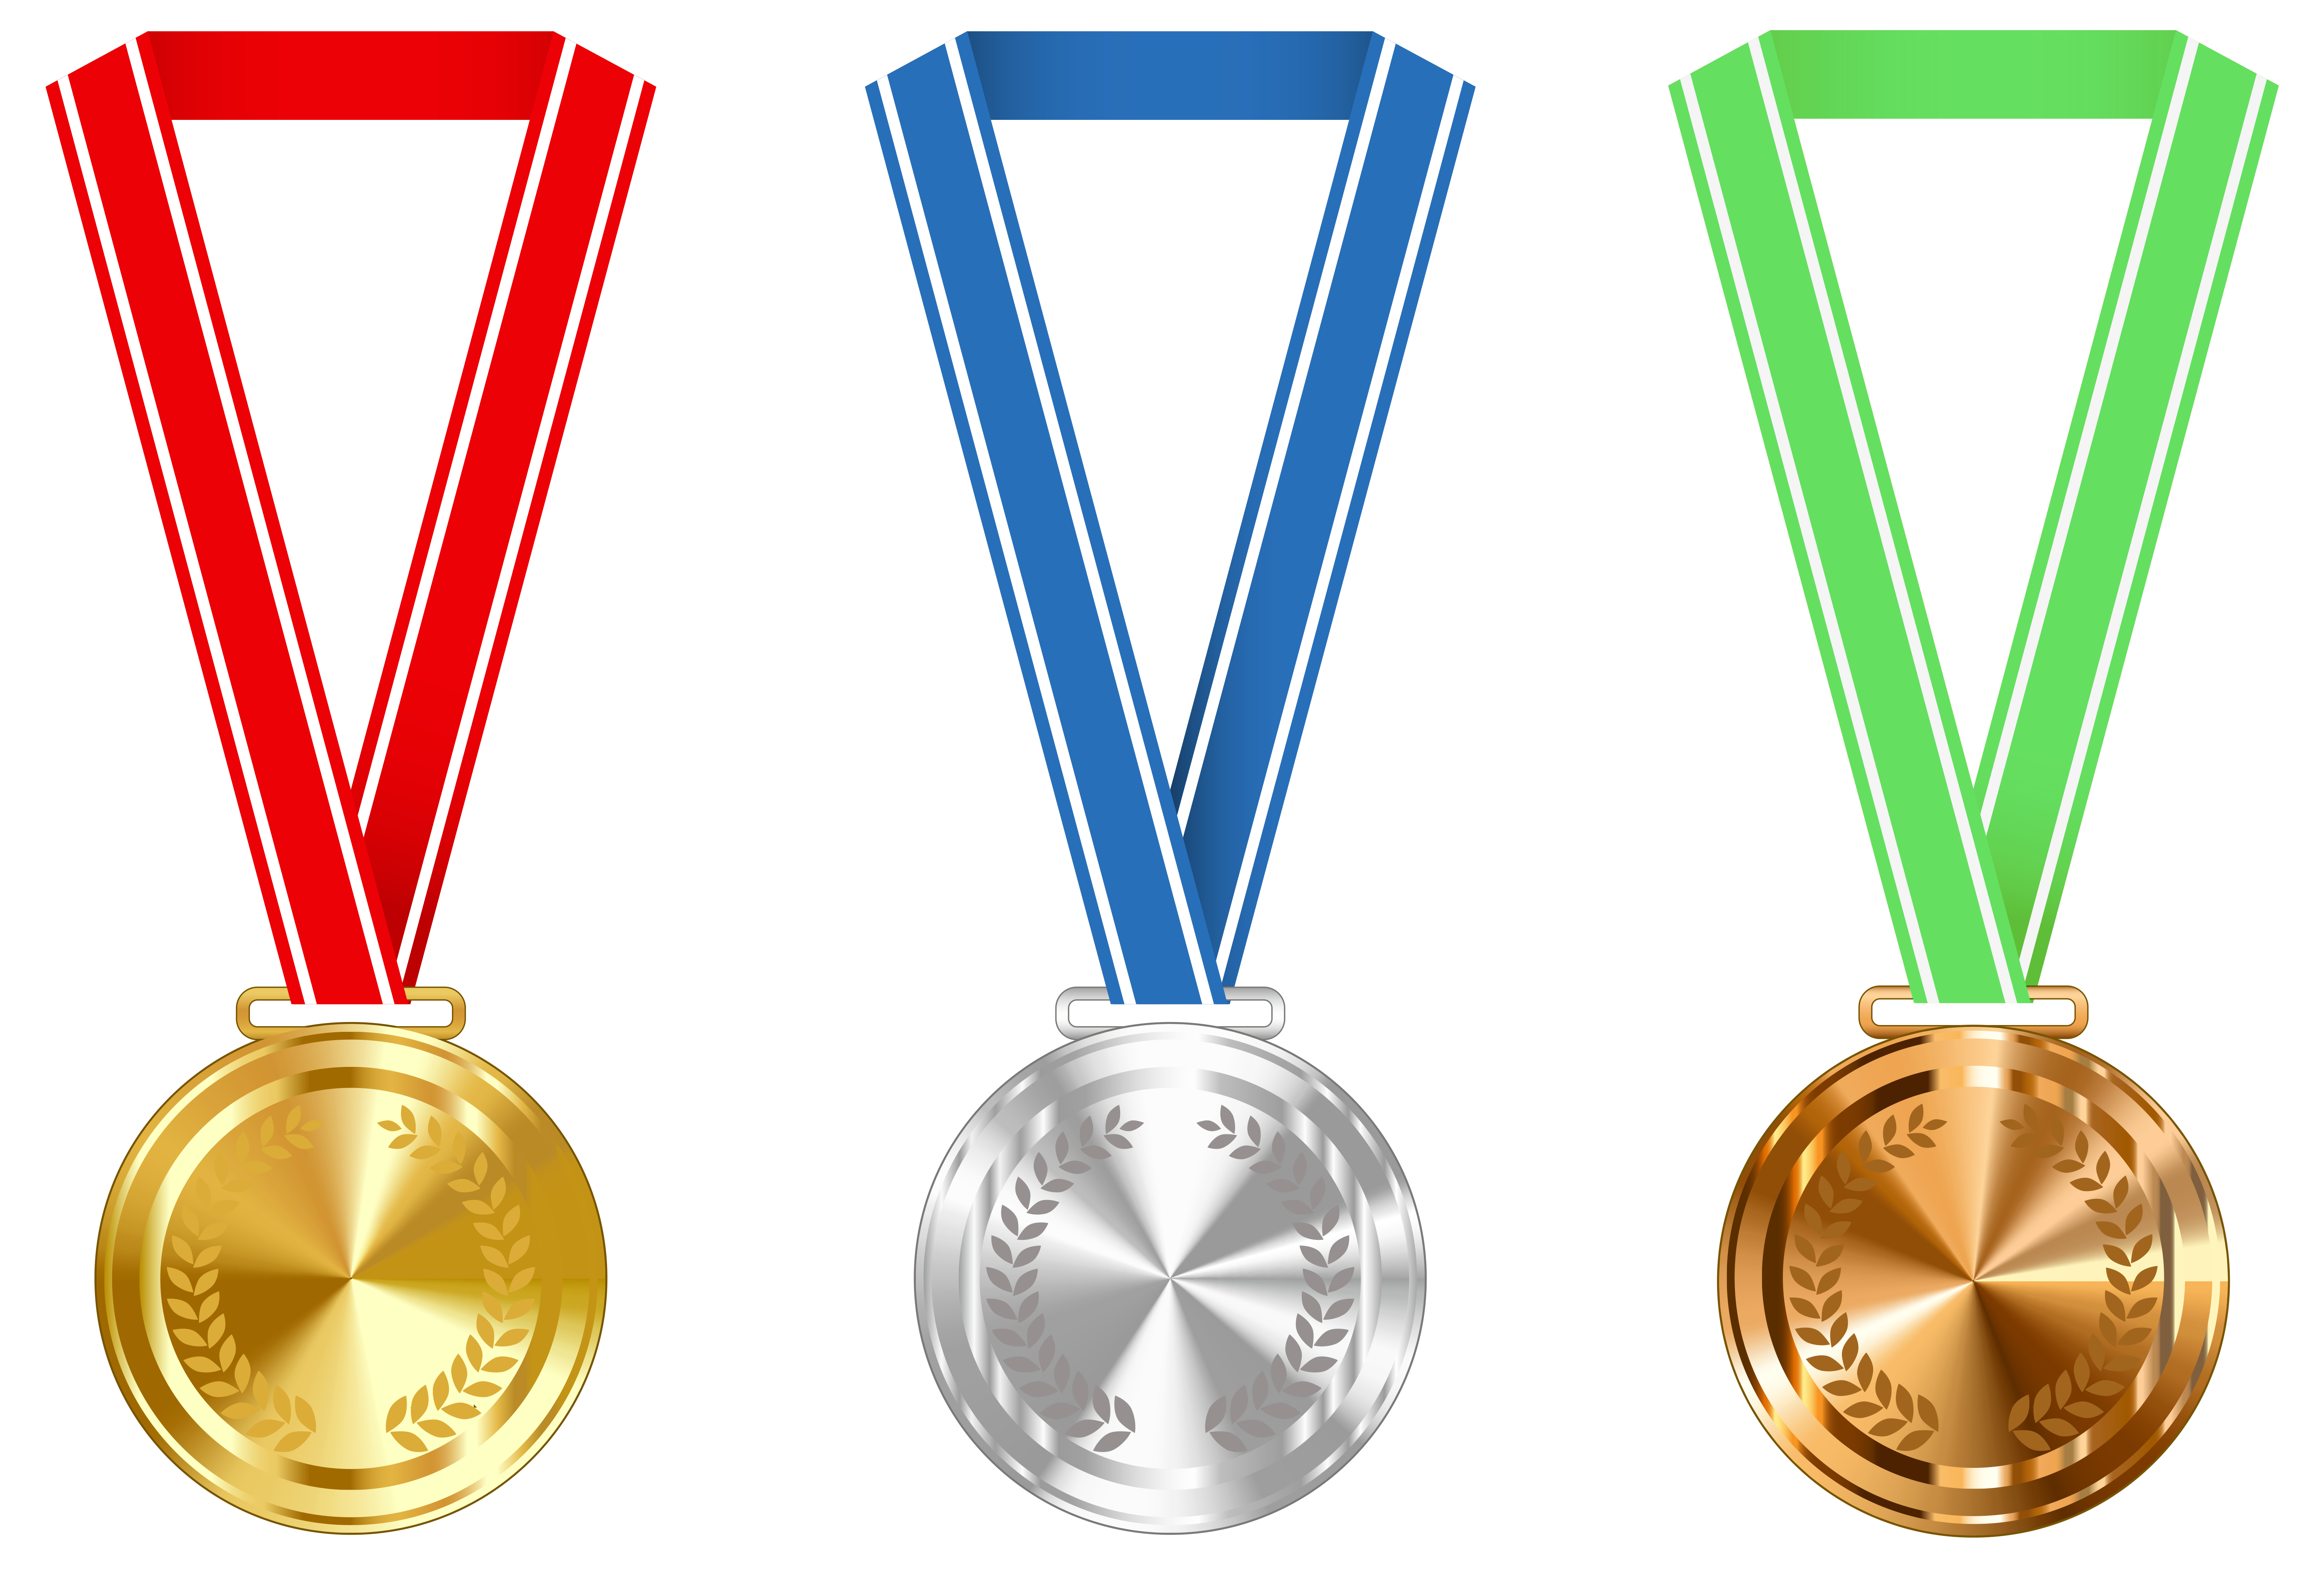 Gold Medal Clipart - .